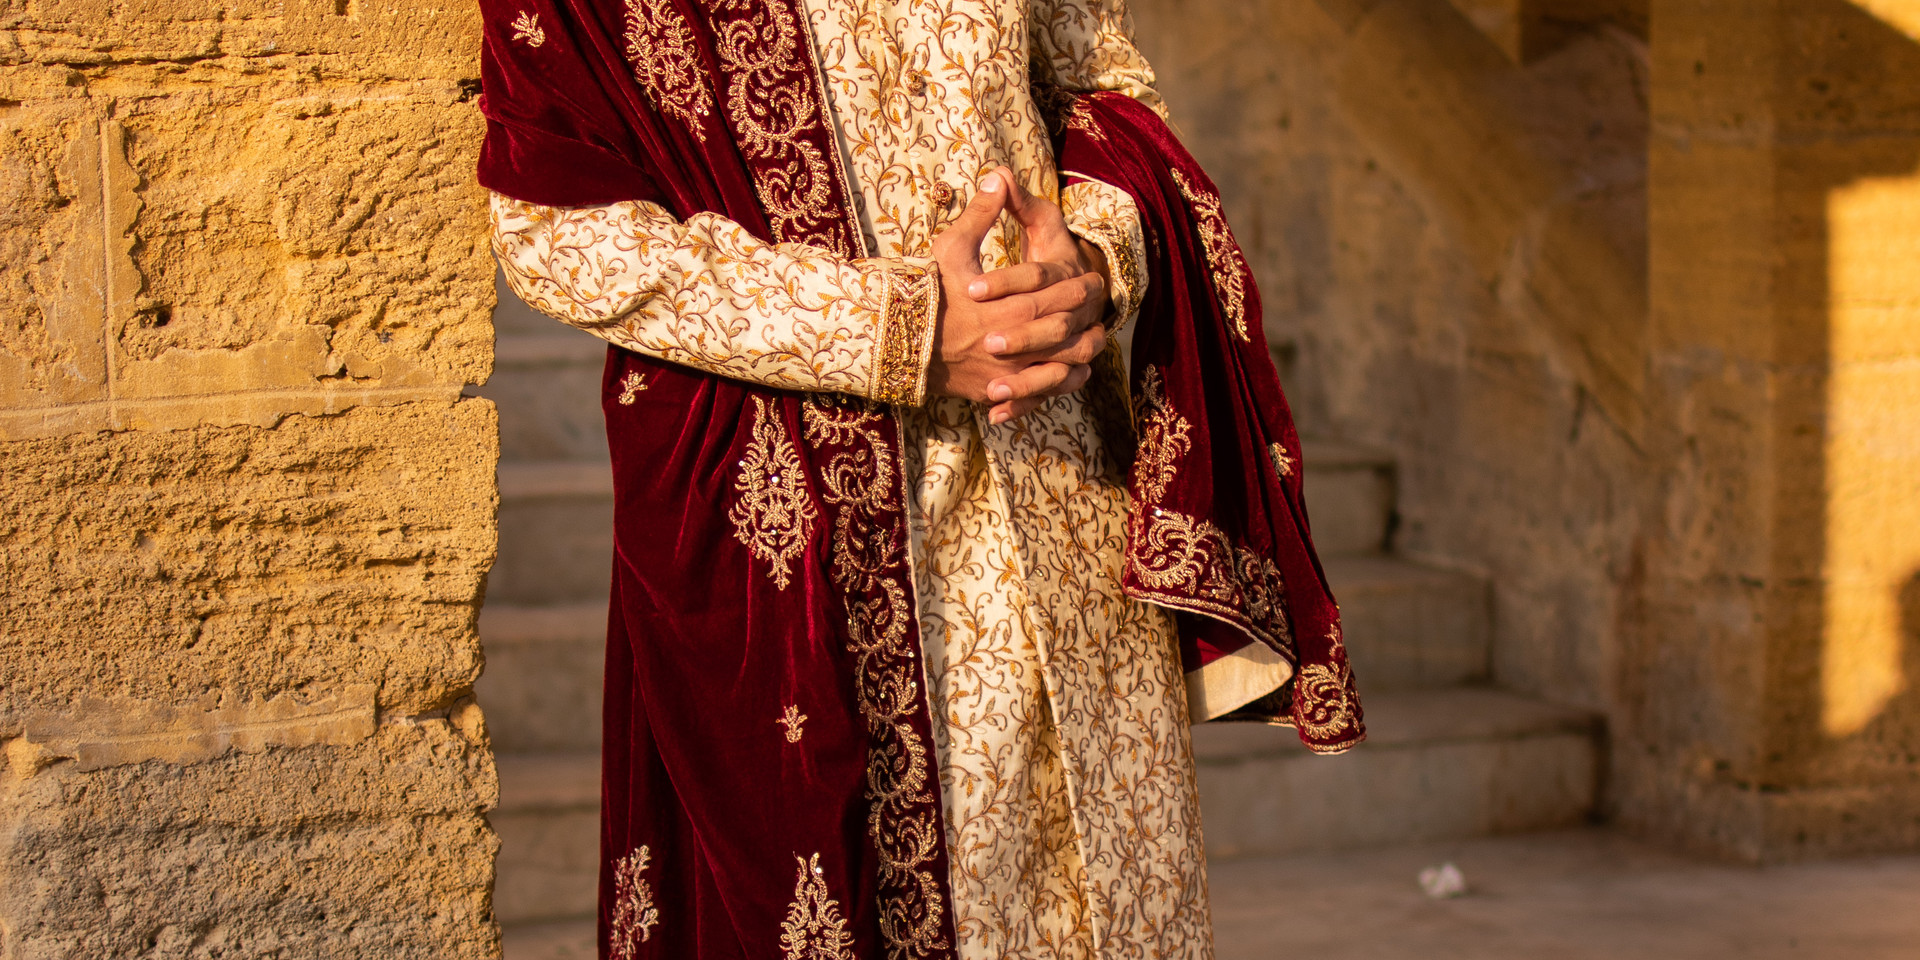 man-in-red-and-golden-marriage-dress-gra